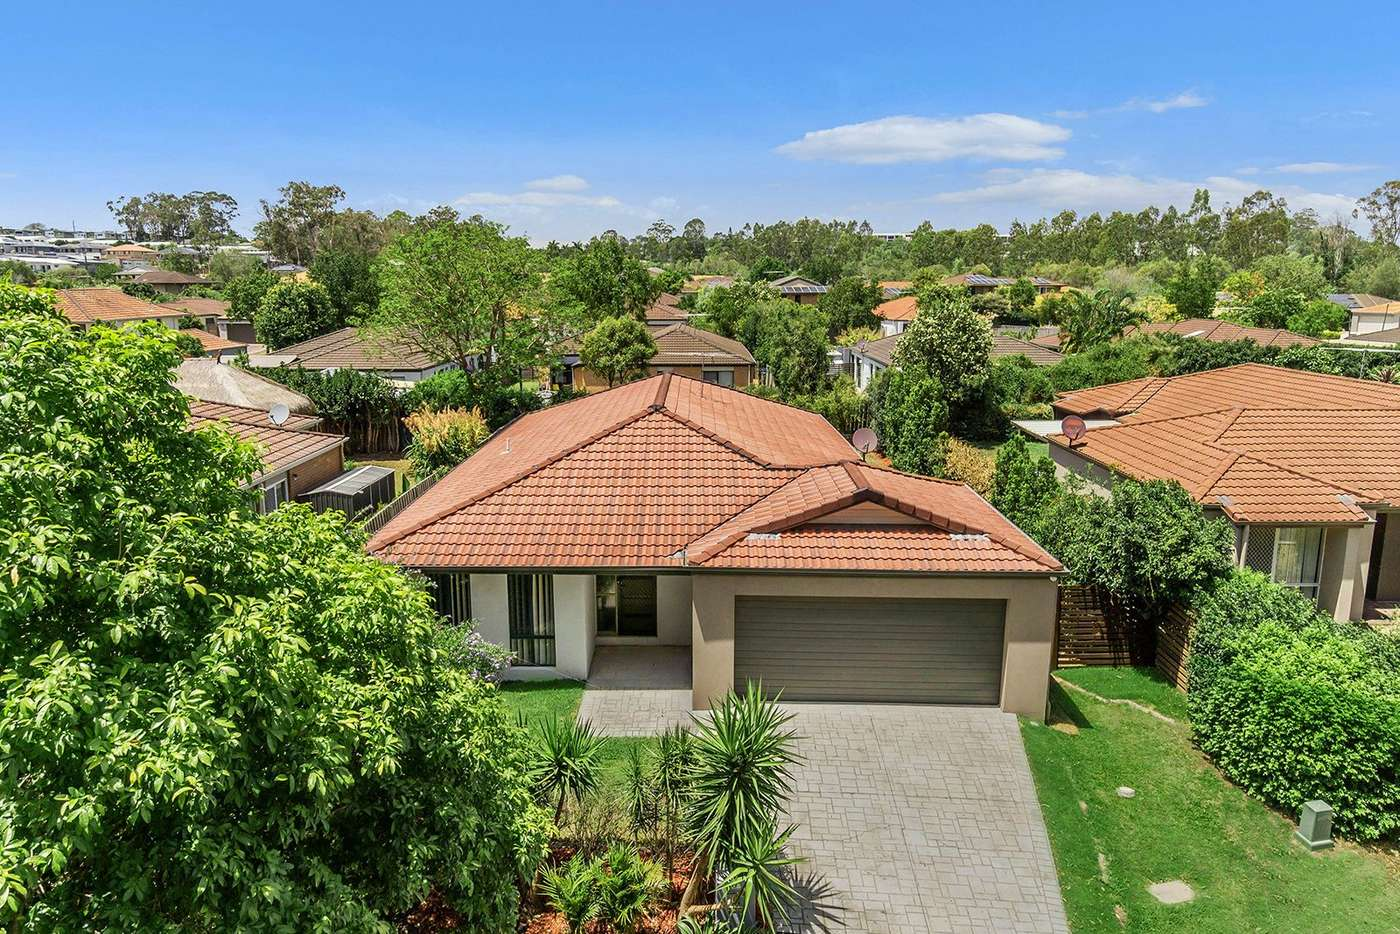 Main view of Homely house listing, 49 Macaranga Crescent, Carseldine QLD 4034